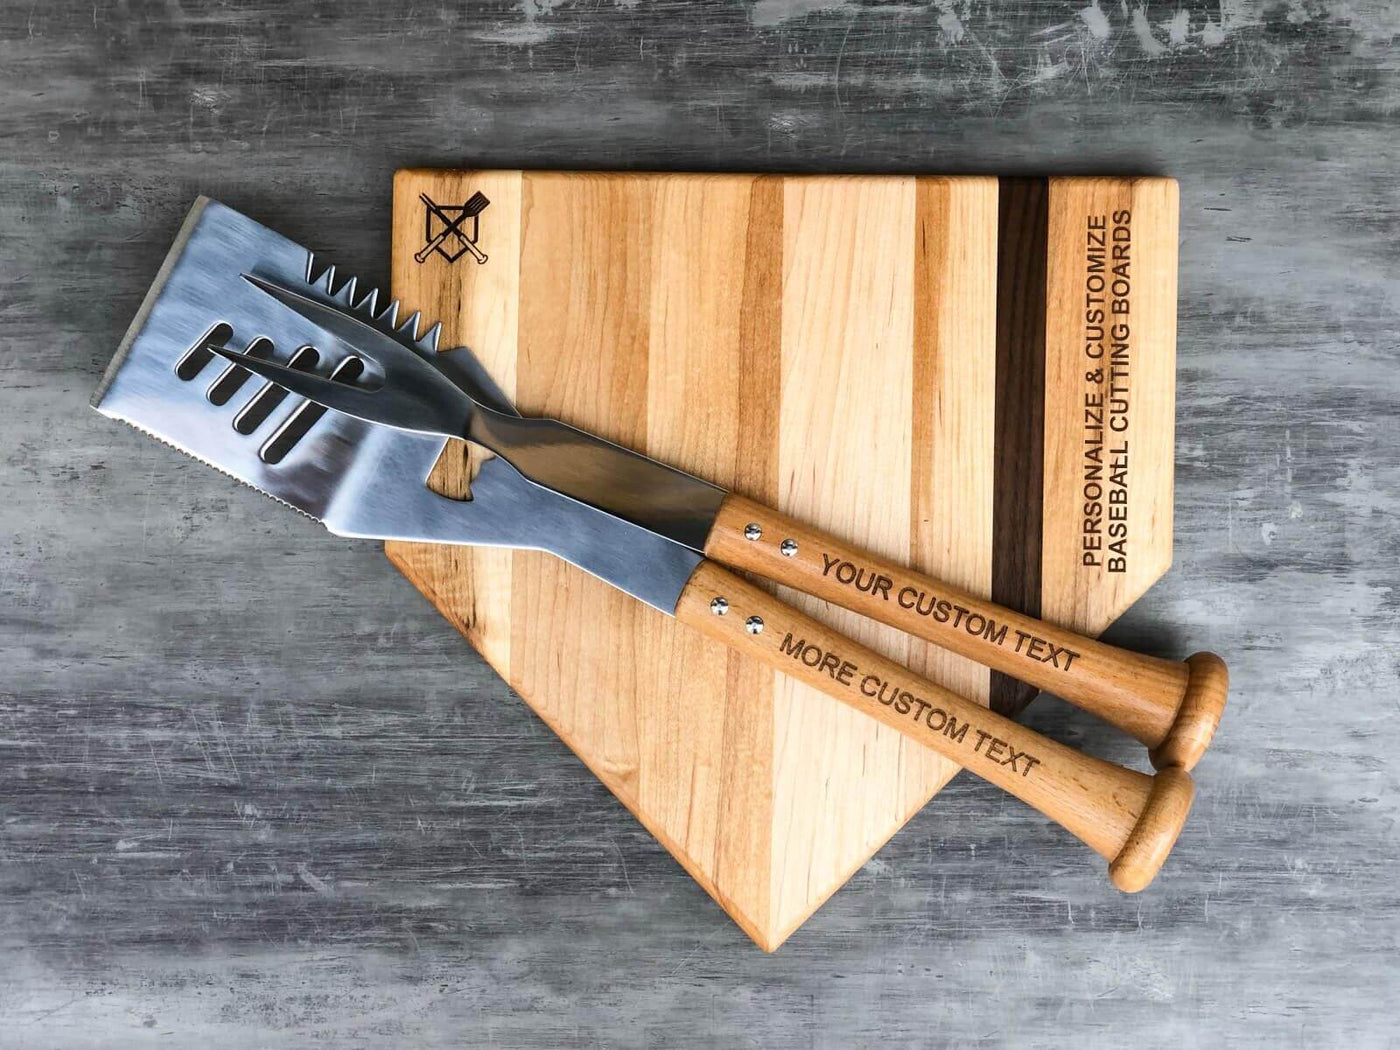 Baseball BBQ offers personalized laser engraving on our baseball grill tools and baseball-inspired hardwood cutting boards for the ultimate baseball fan gift.